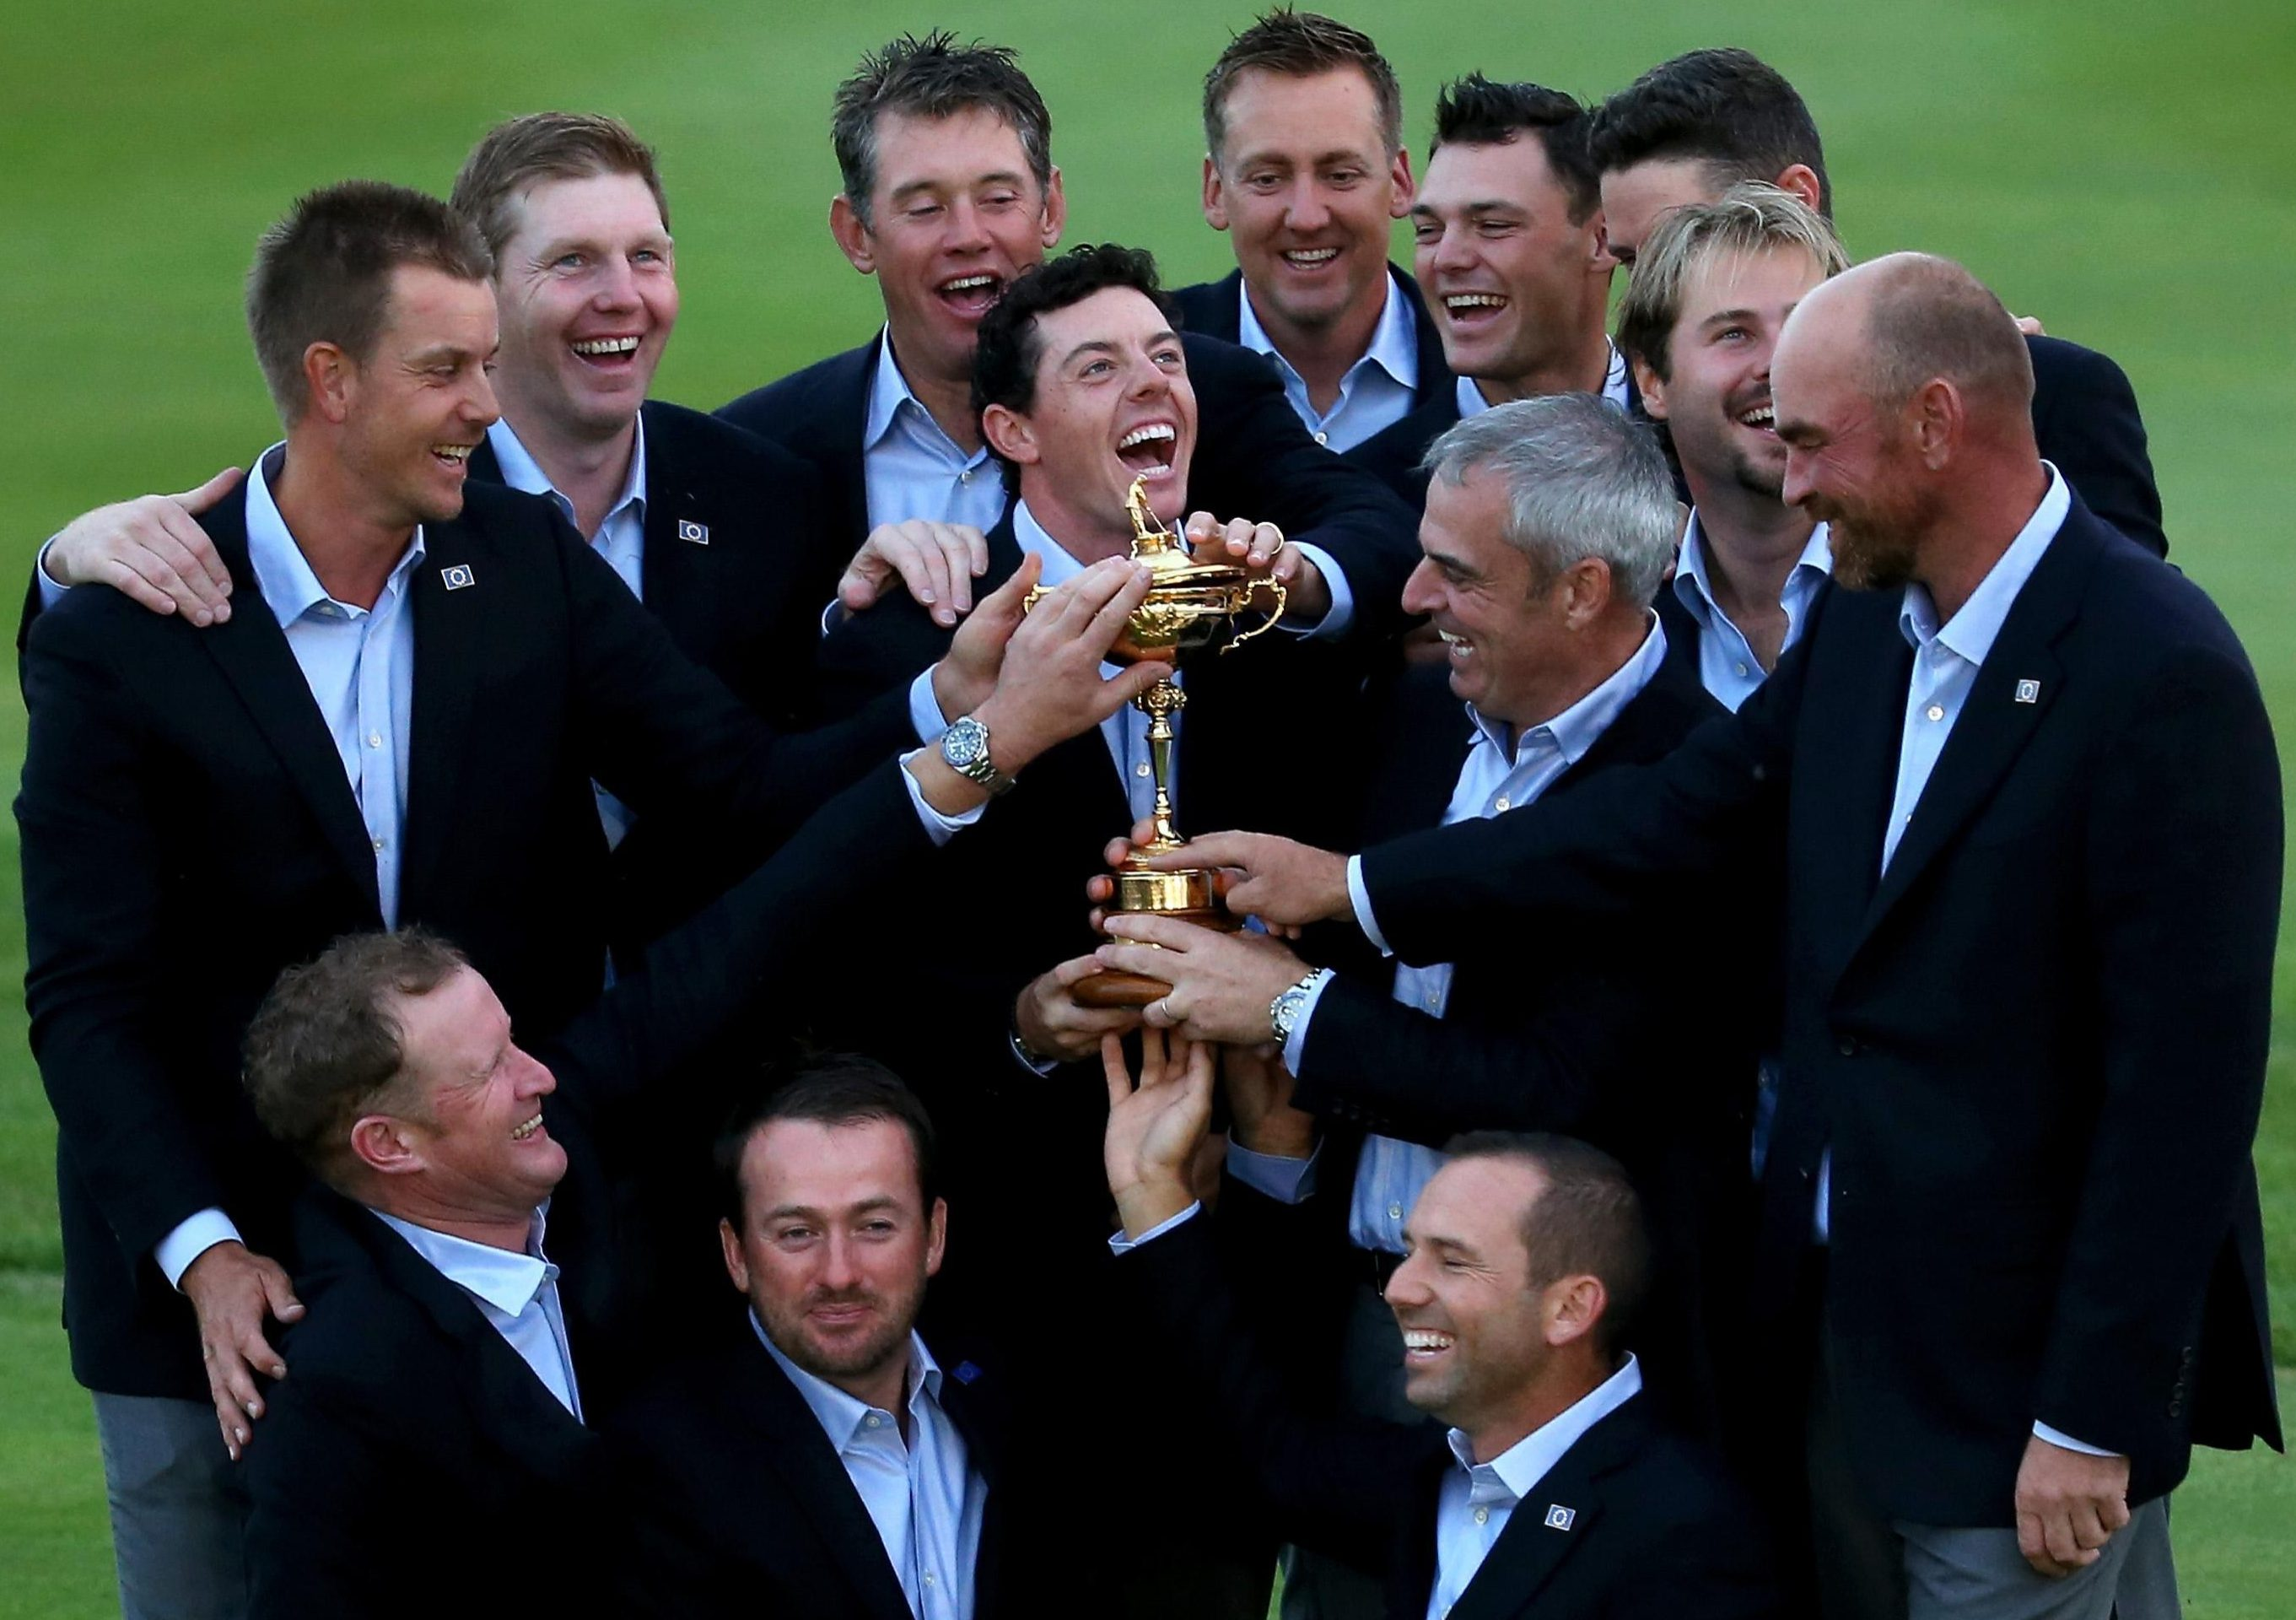 Europe team captain Paul McGinley and Rory McIlroy with the Ryder Cup trophy as teammates join in the celebrations after victory at Gleneagles in 2014